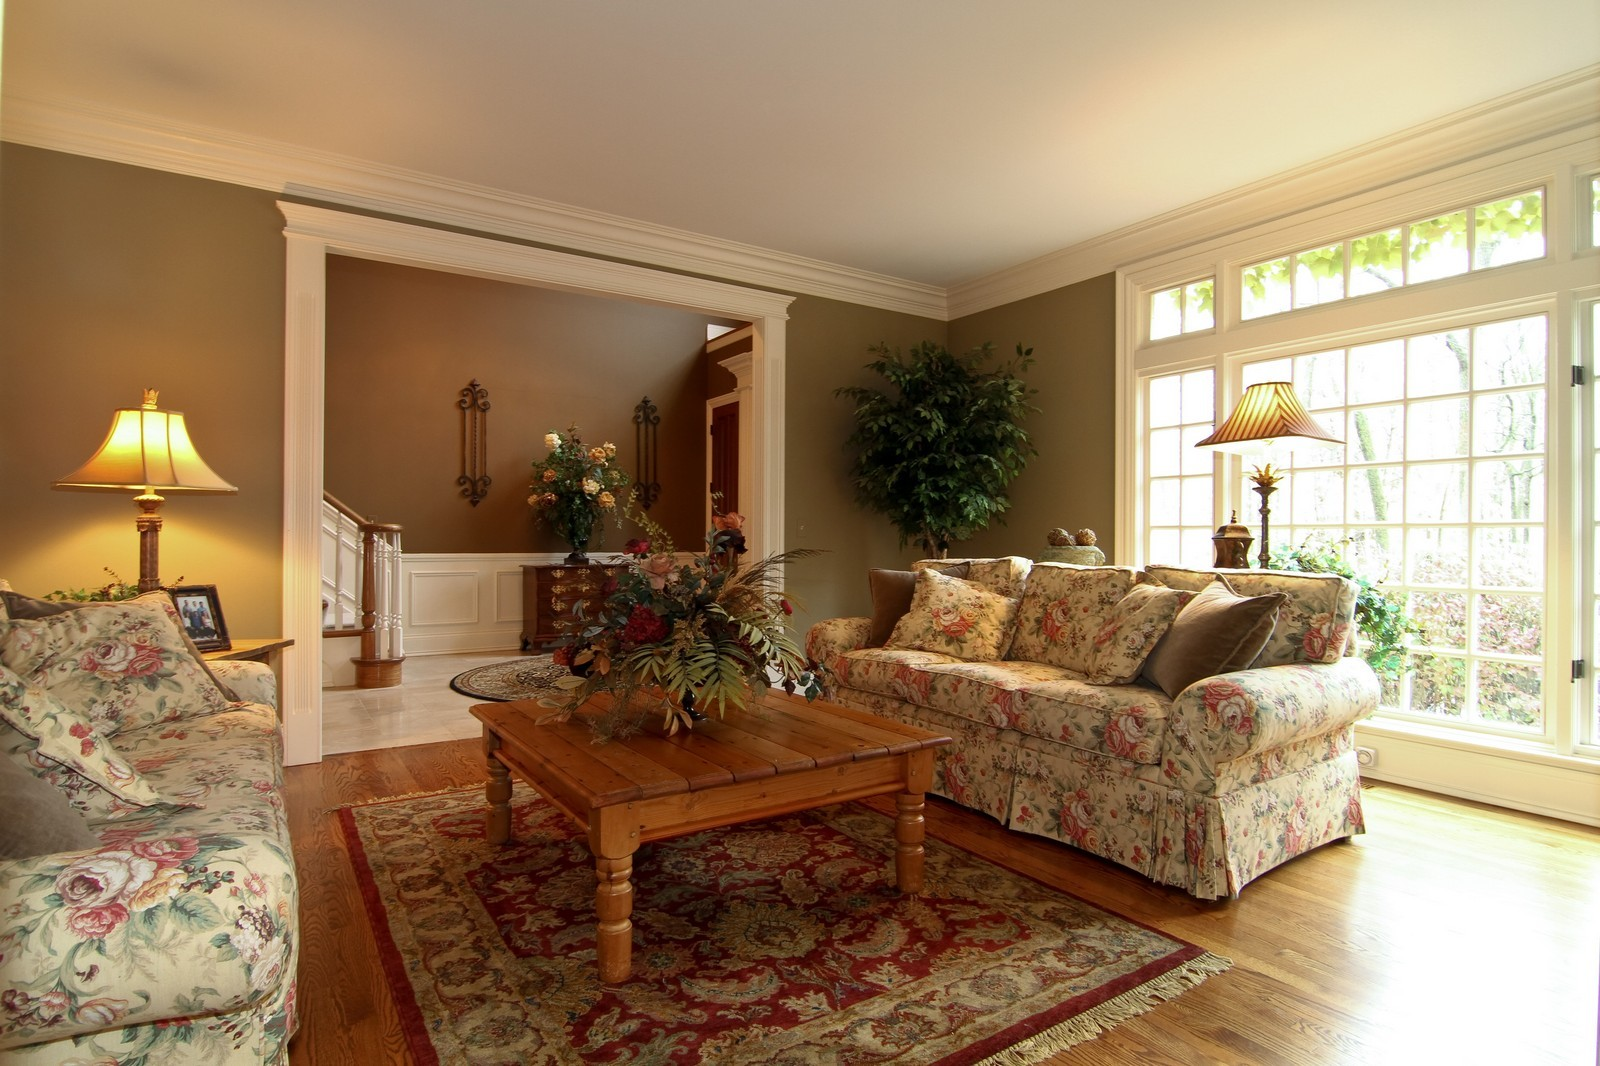 Real Estate Photography - 810 Fox Glen Drive, St. Charles, IL, 60174 - Living Room